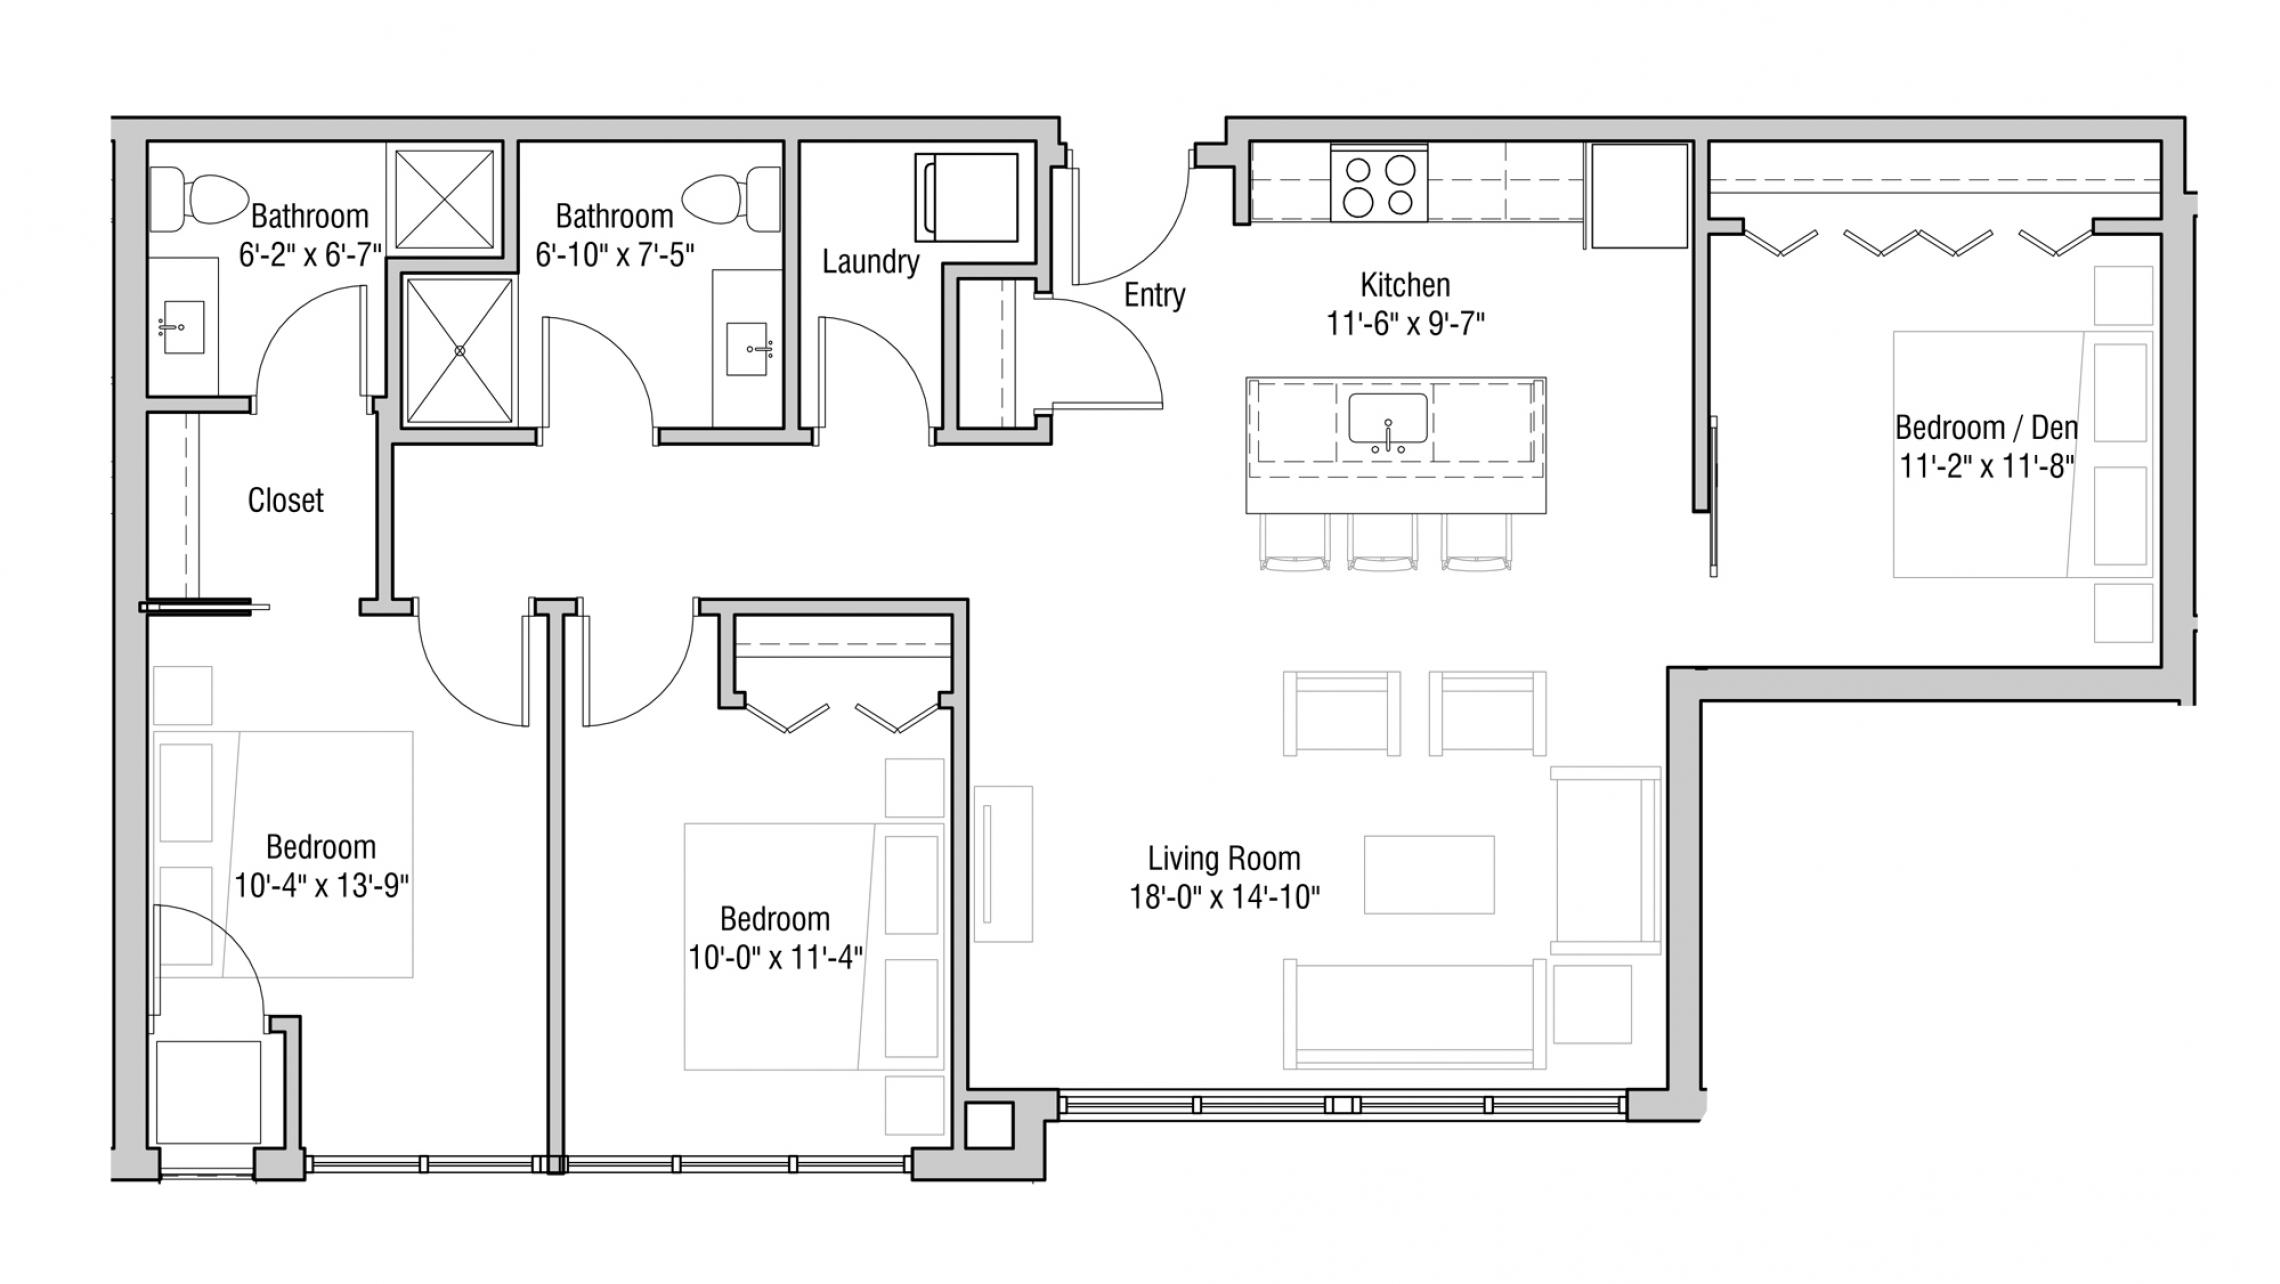 ULI Quarter Row 316 - Two Bedroom, Two Bathroom